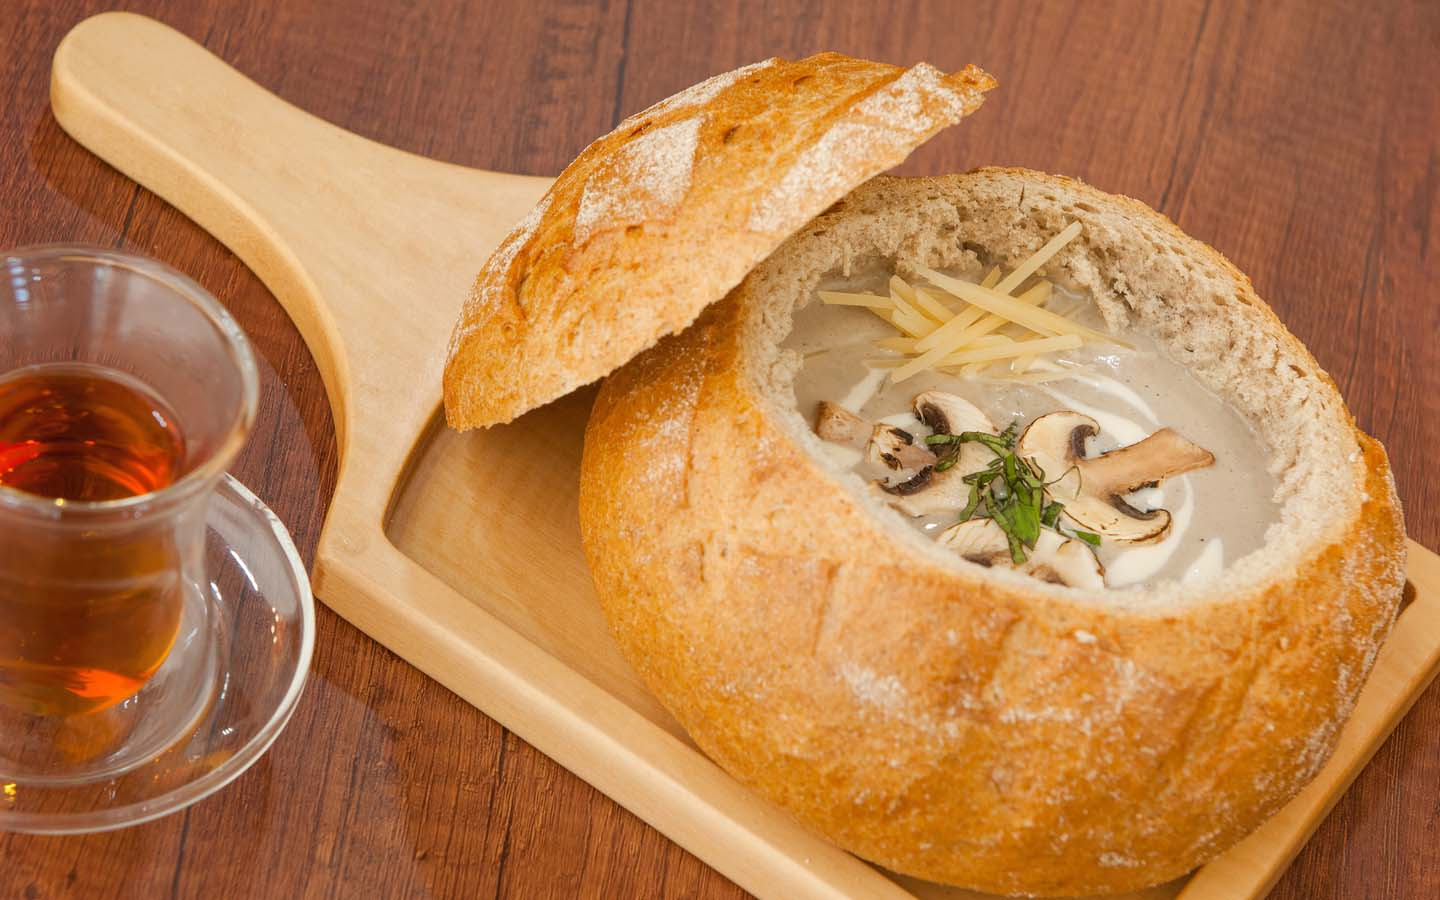 Try out the mushroom and pumpkin soup at First Clique that comes in a bread bowl